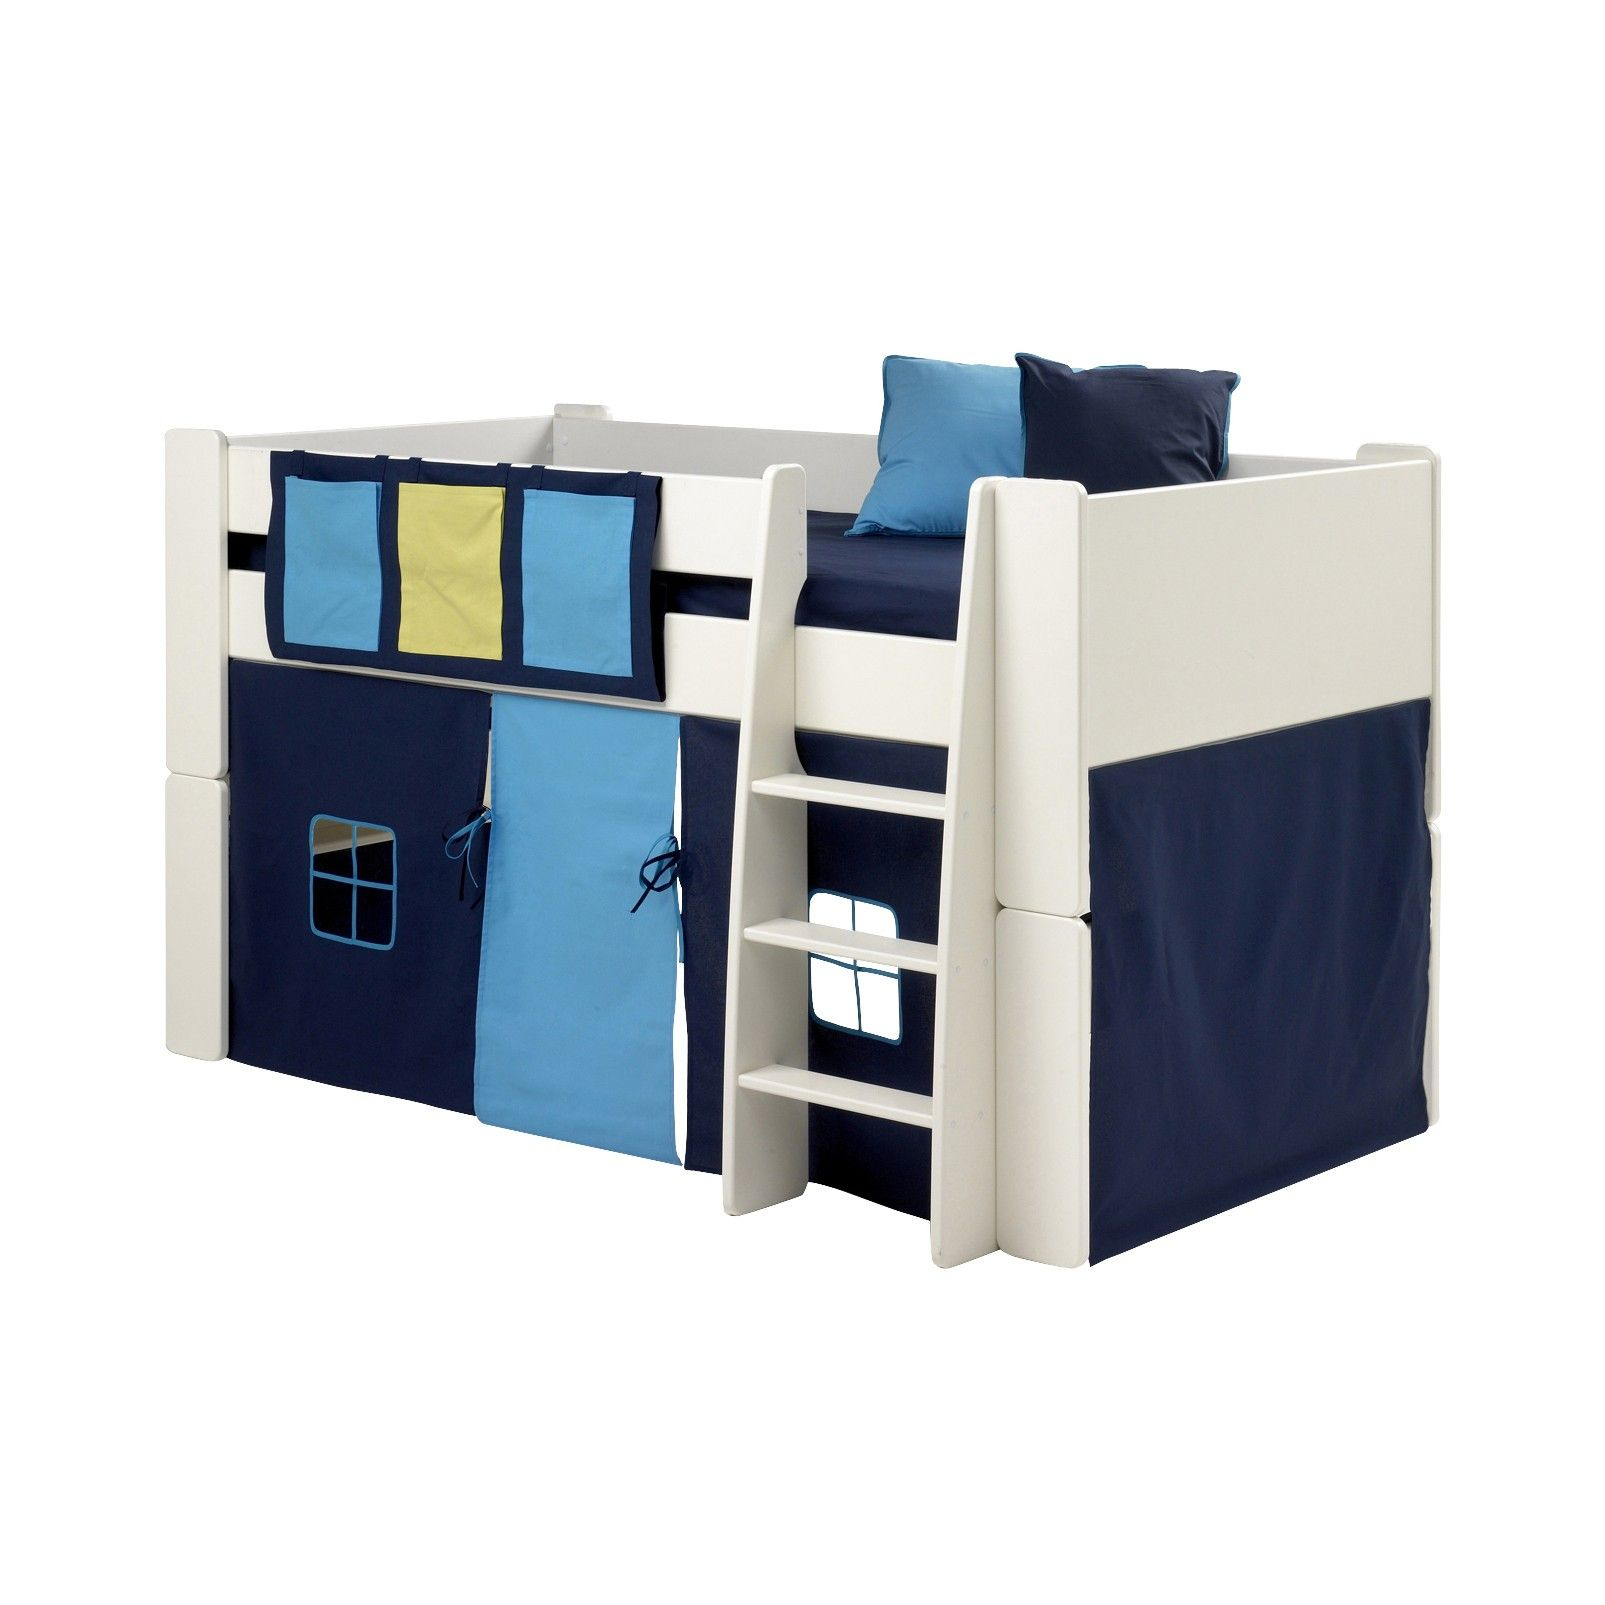 Steens For Kids Steens For Kids Mid Sleeper 3 Pocket Rail Tidy In Blue